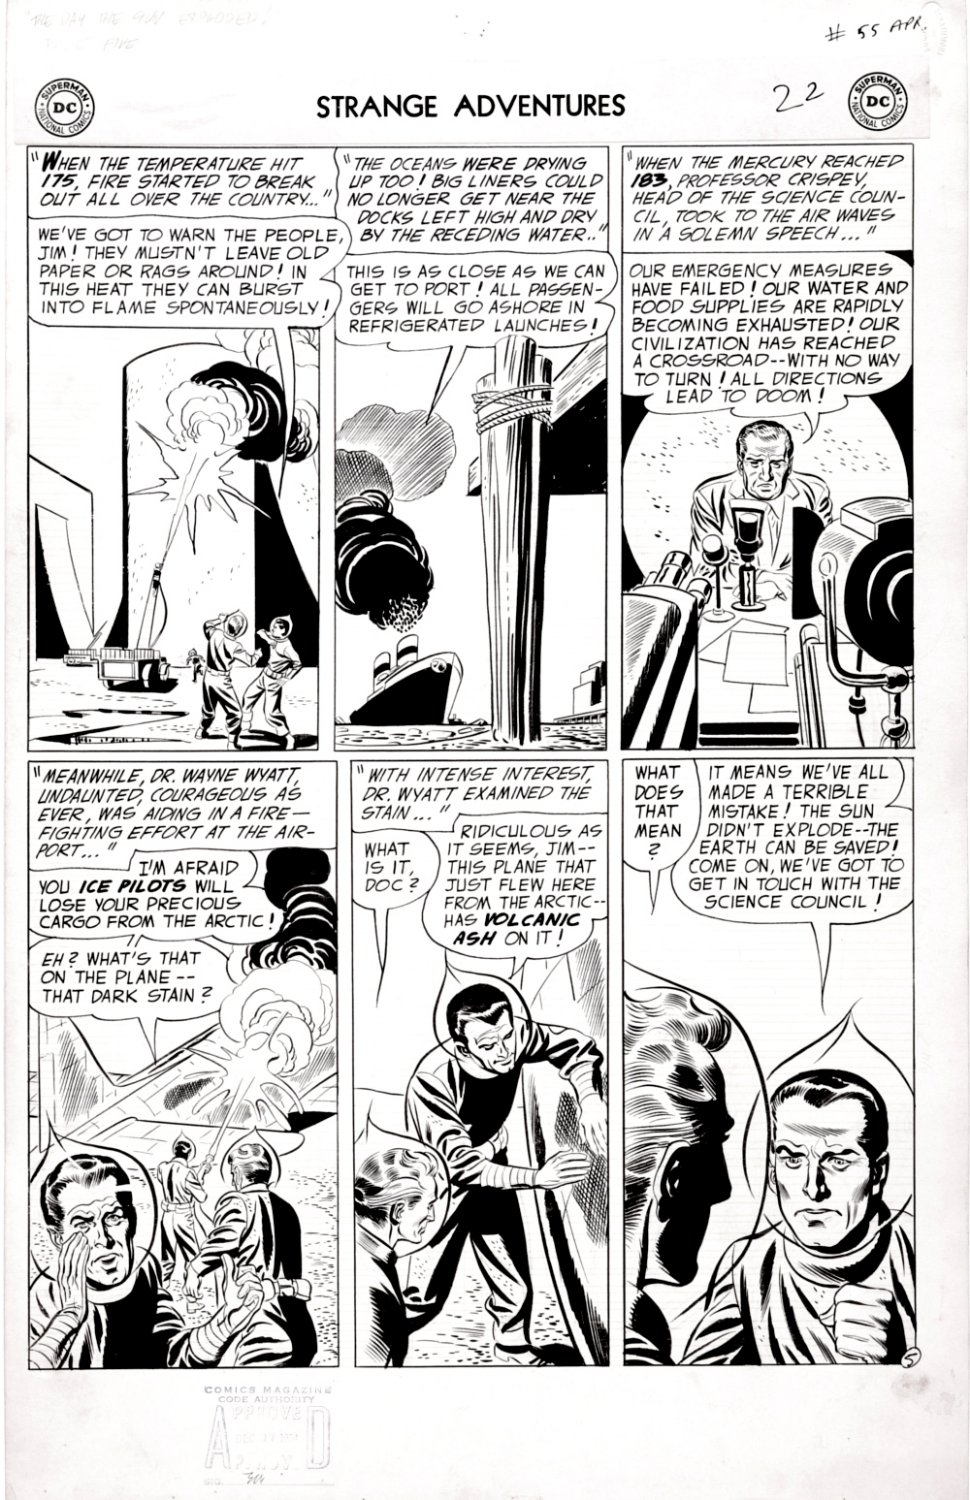 Strange Adventures #55 (Large Art Science Fiction Page!) 1954